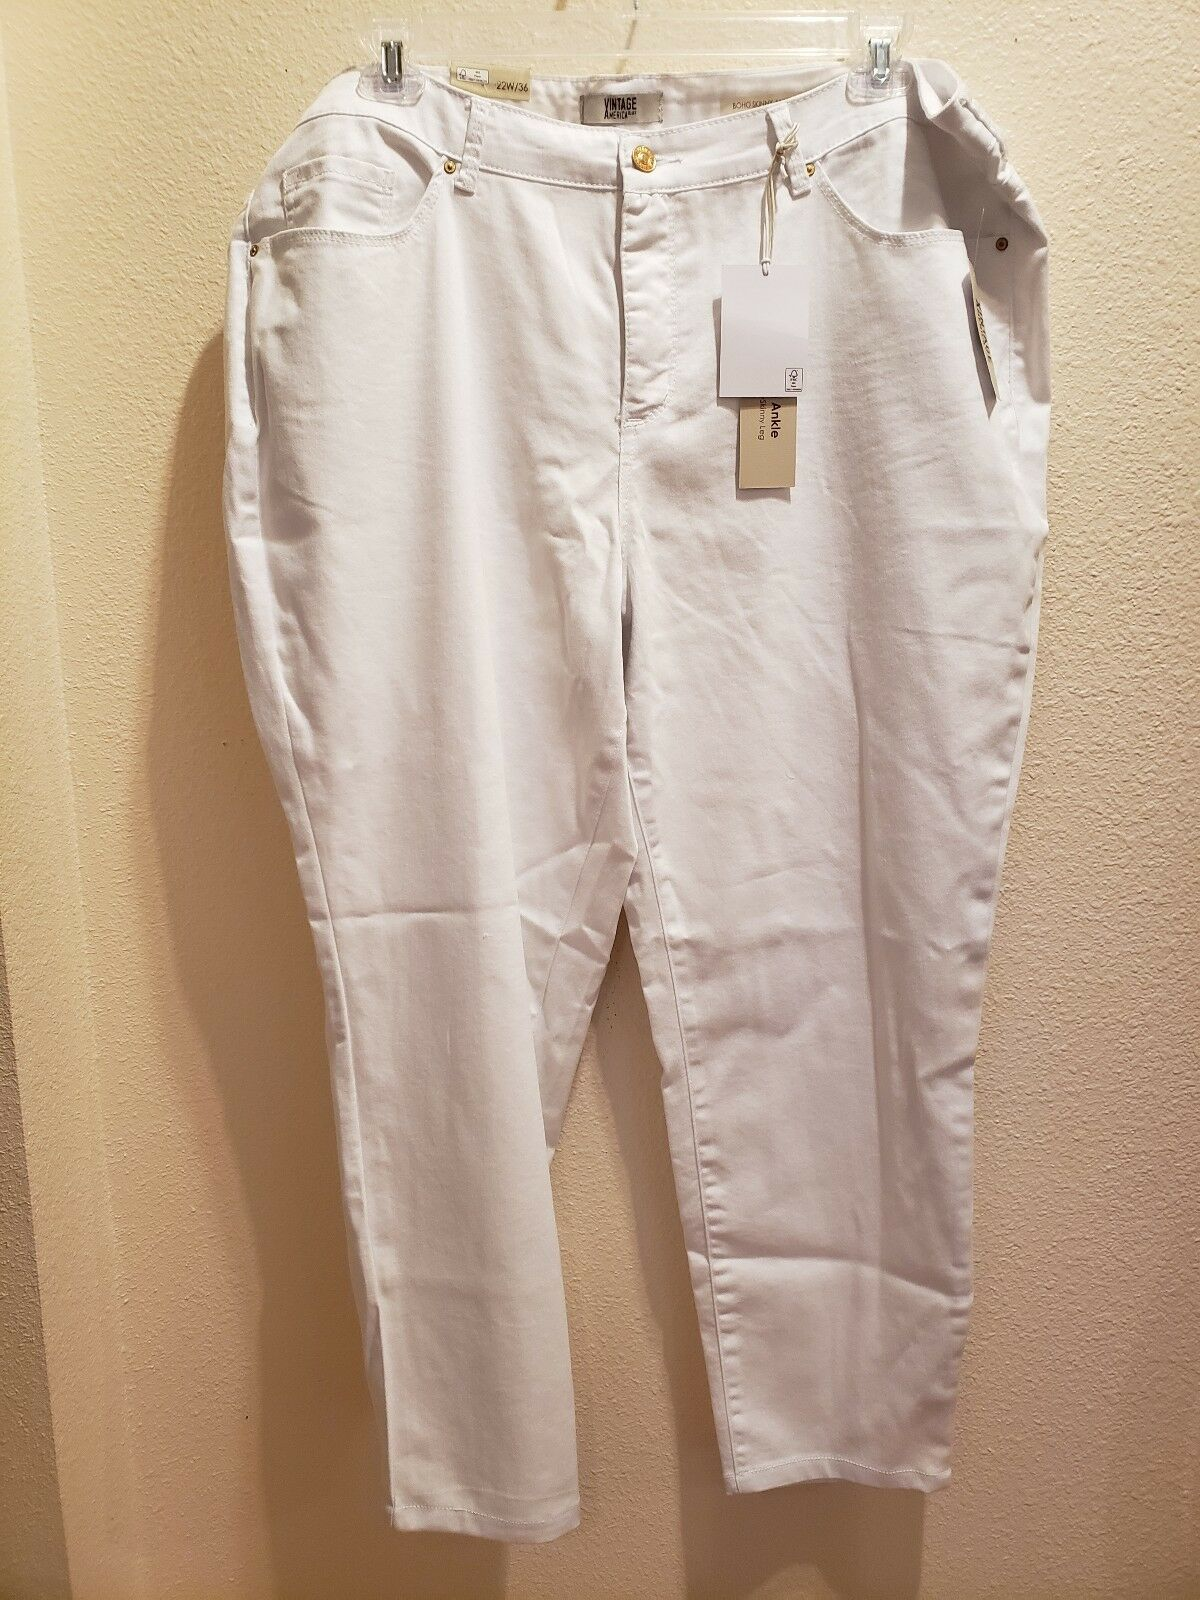 0fad9863b New VINTAGE AMERICA bluees Size White Ankle Length Jeans 22W ...